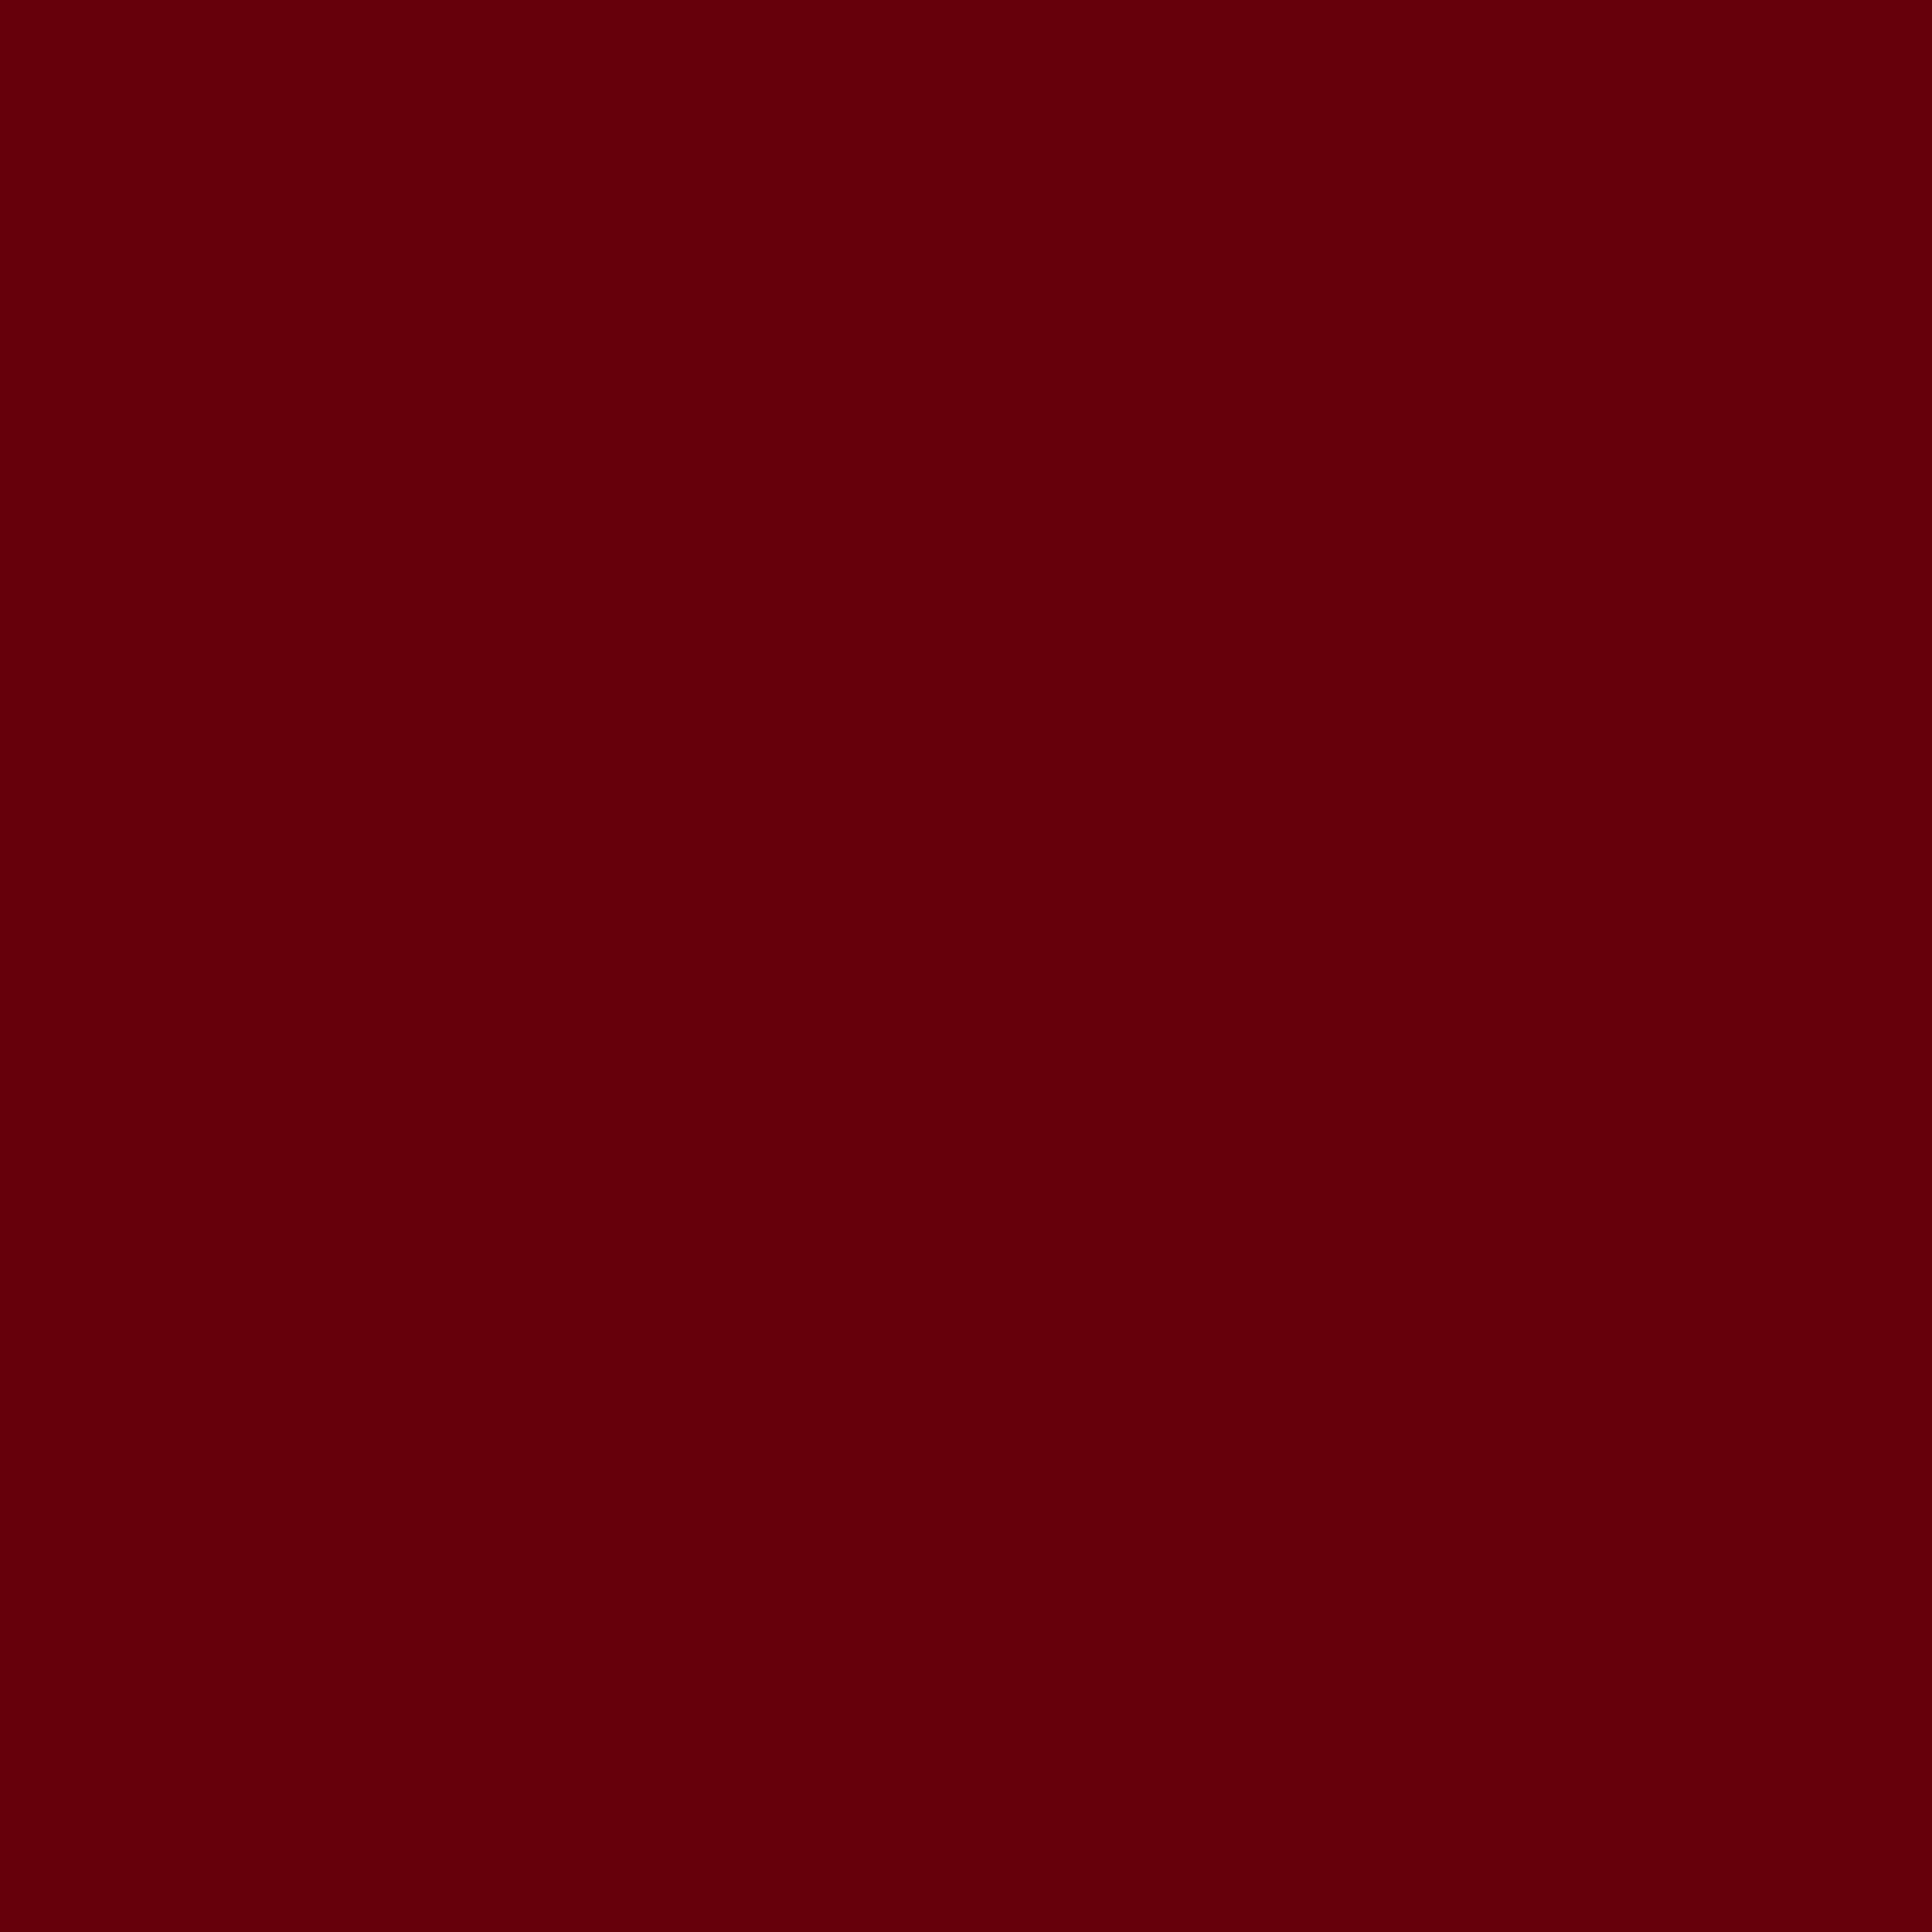 2732x2732 Rosewood Solid Color Background